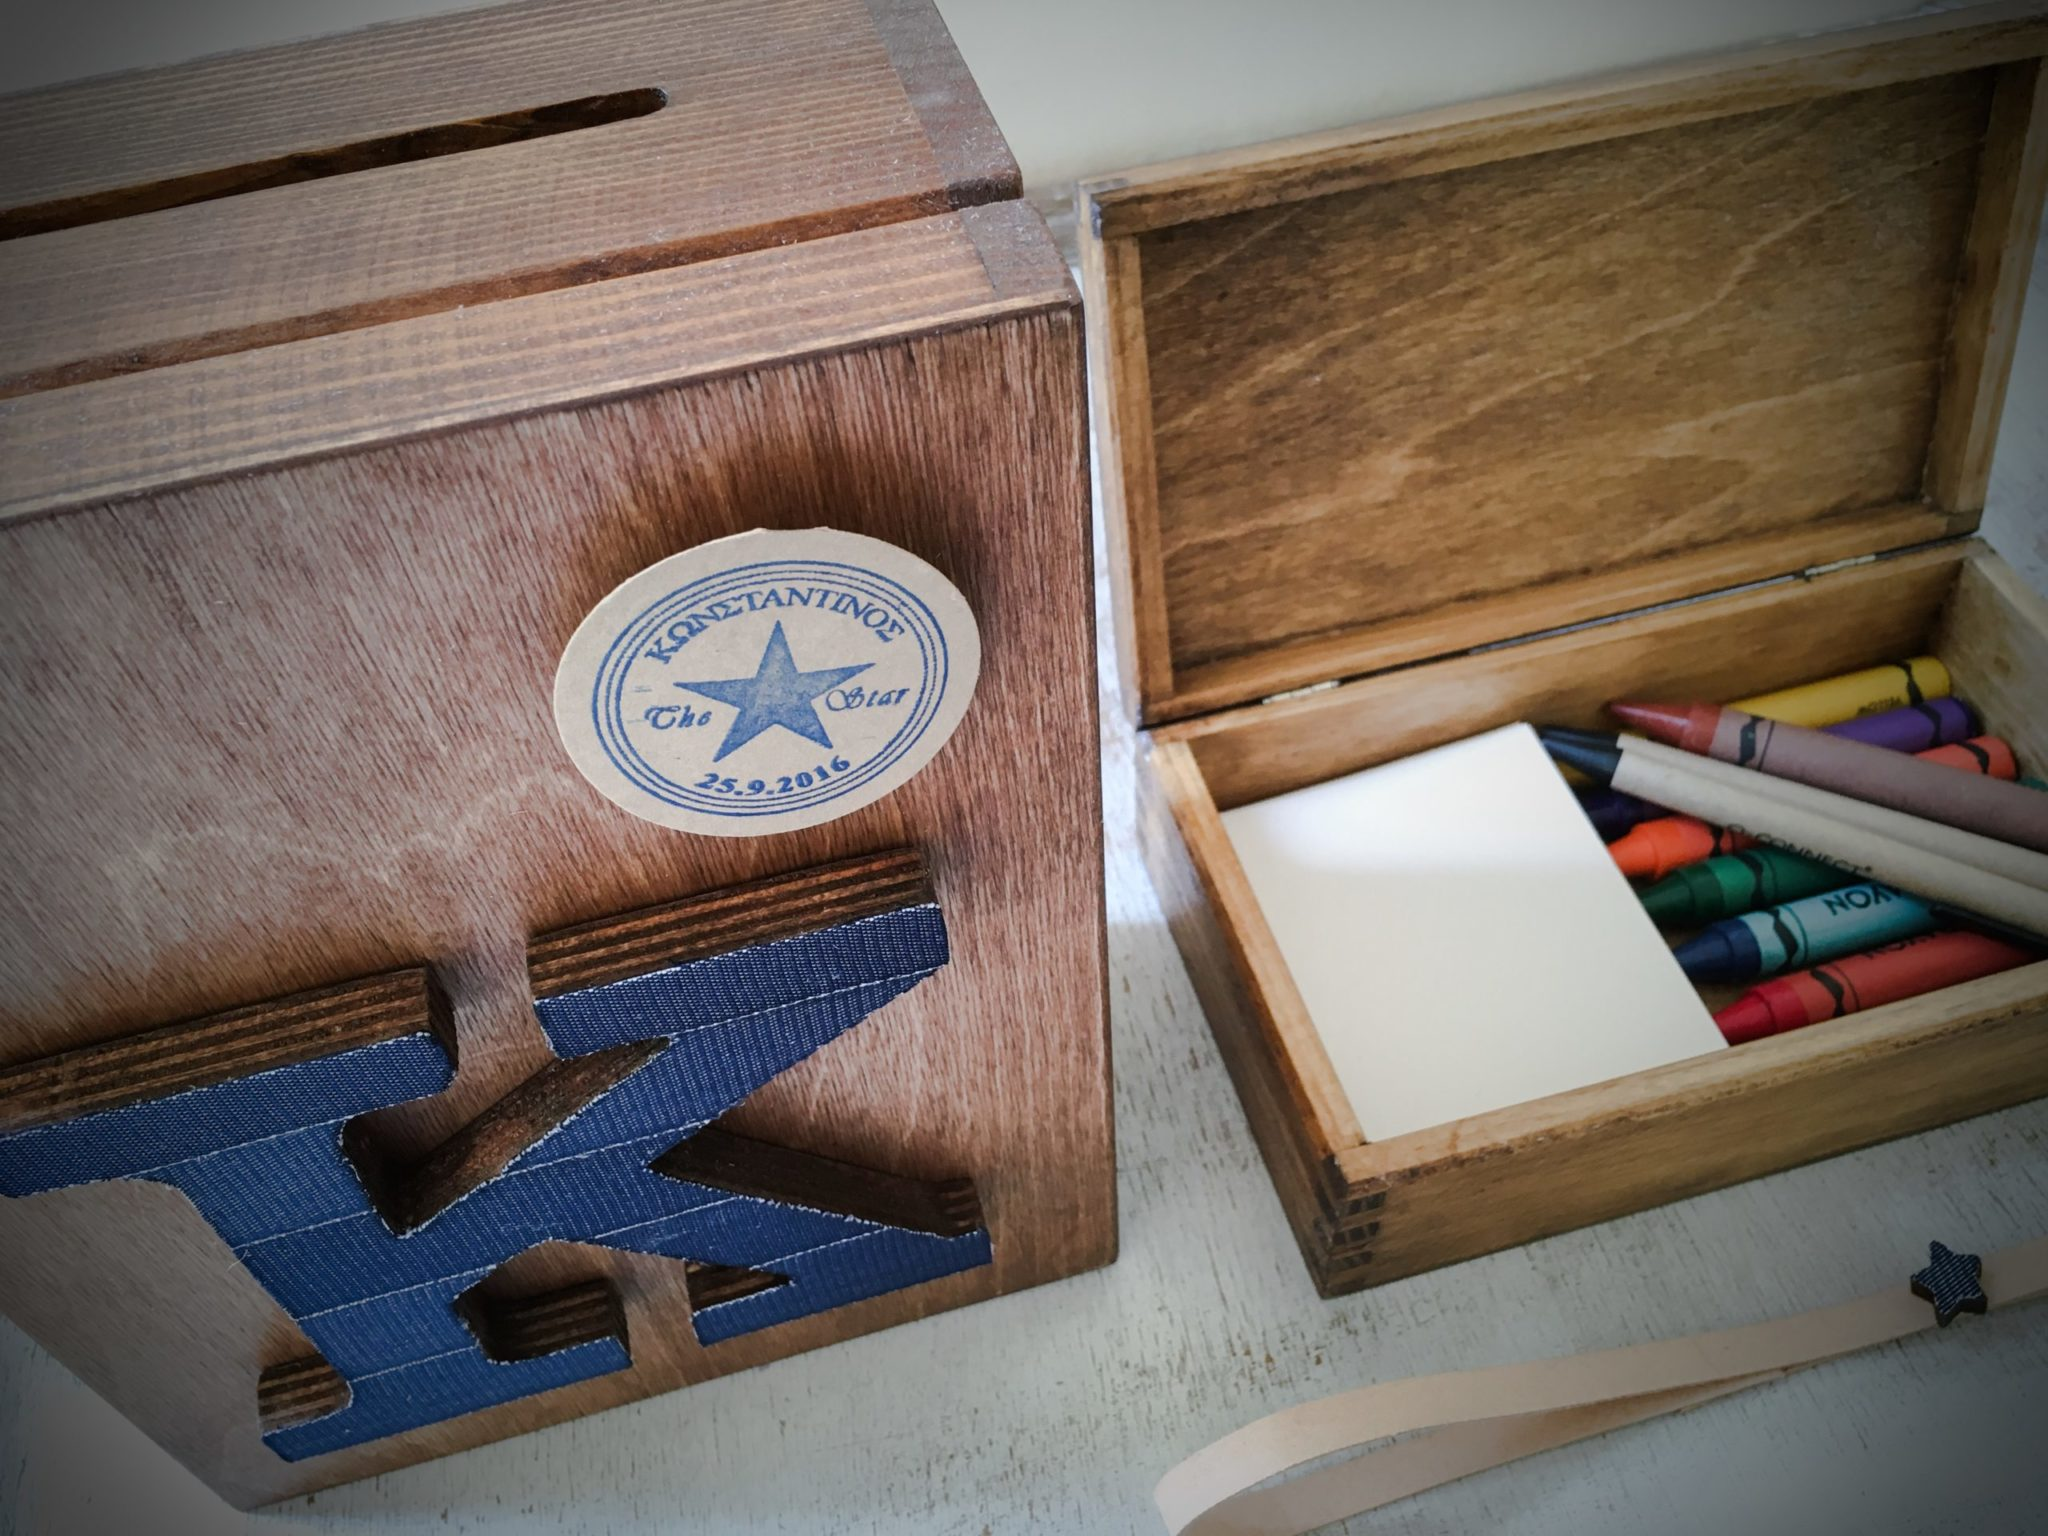 Denim Christening-baptism wish box-content--kids activity